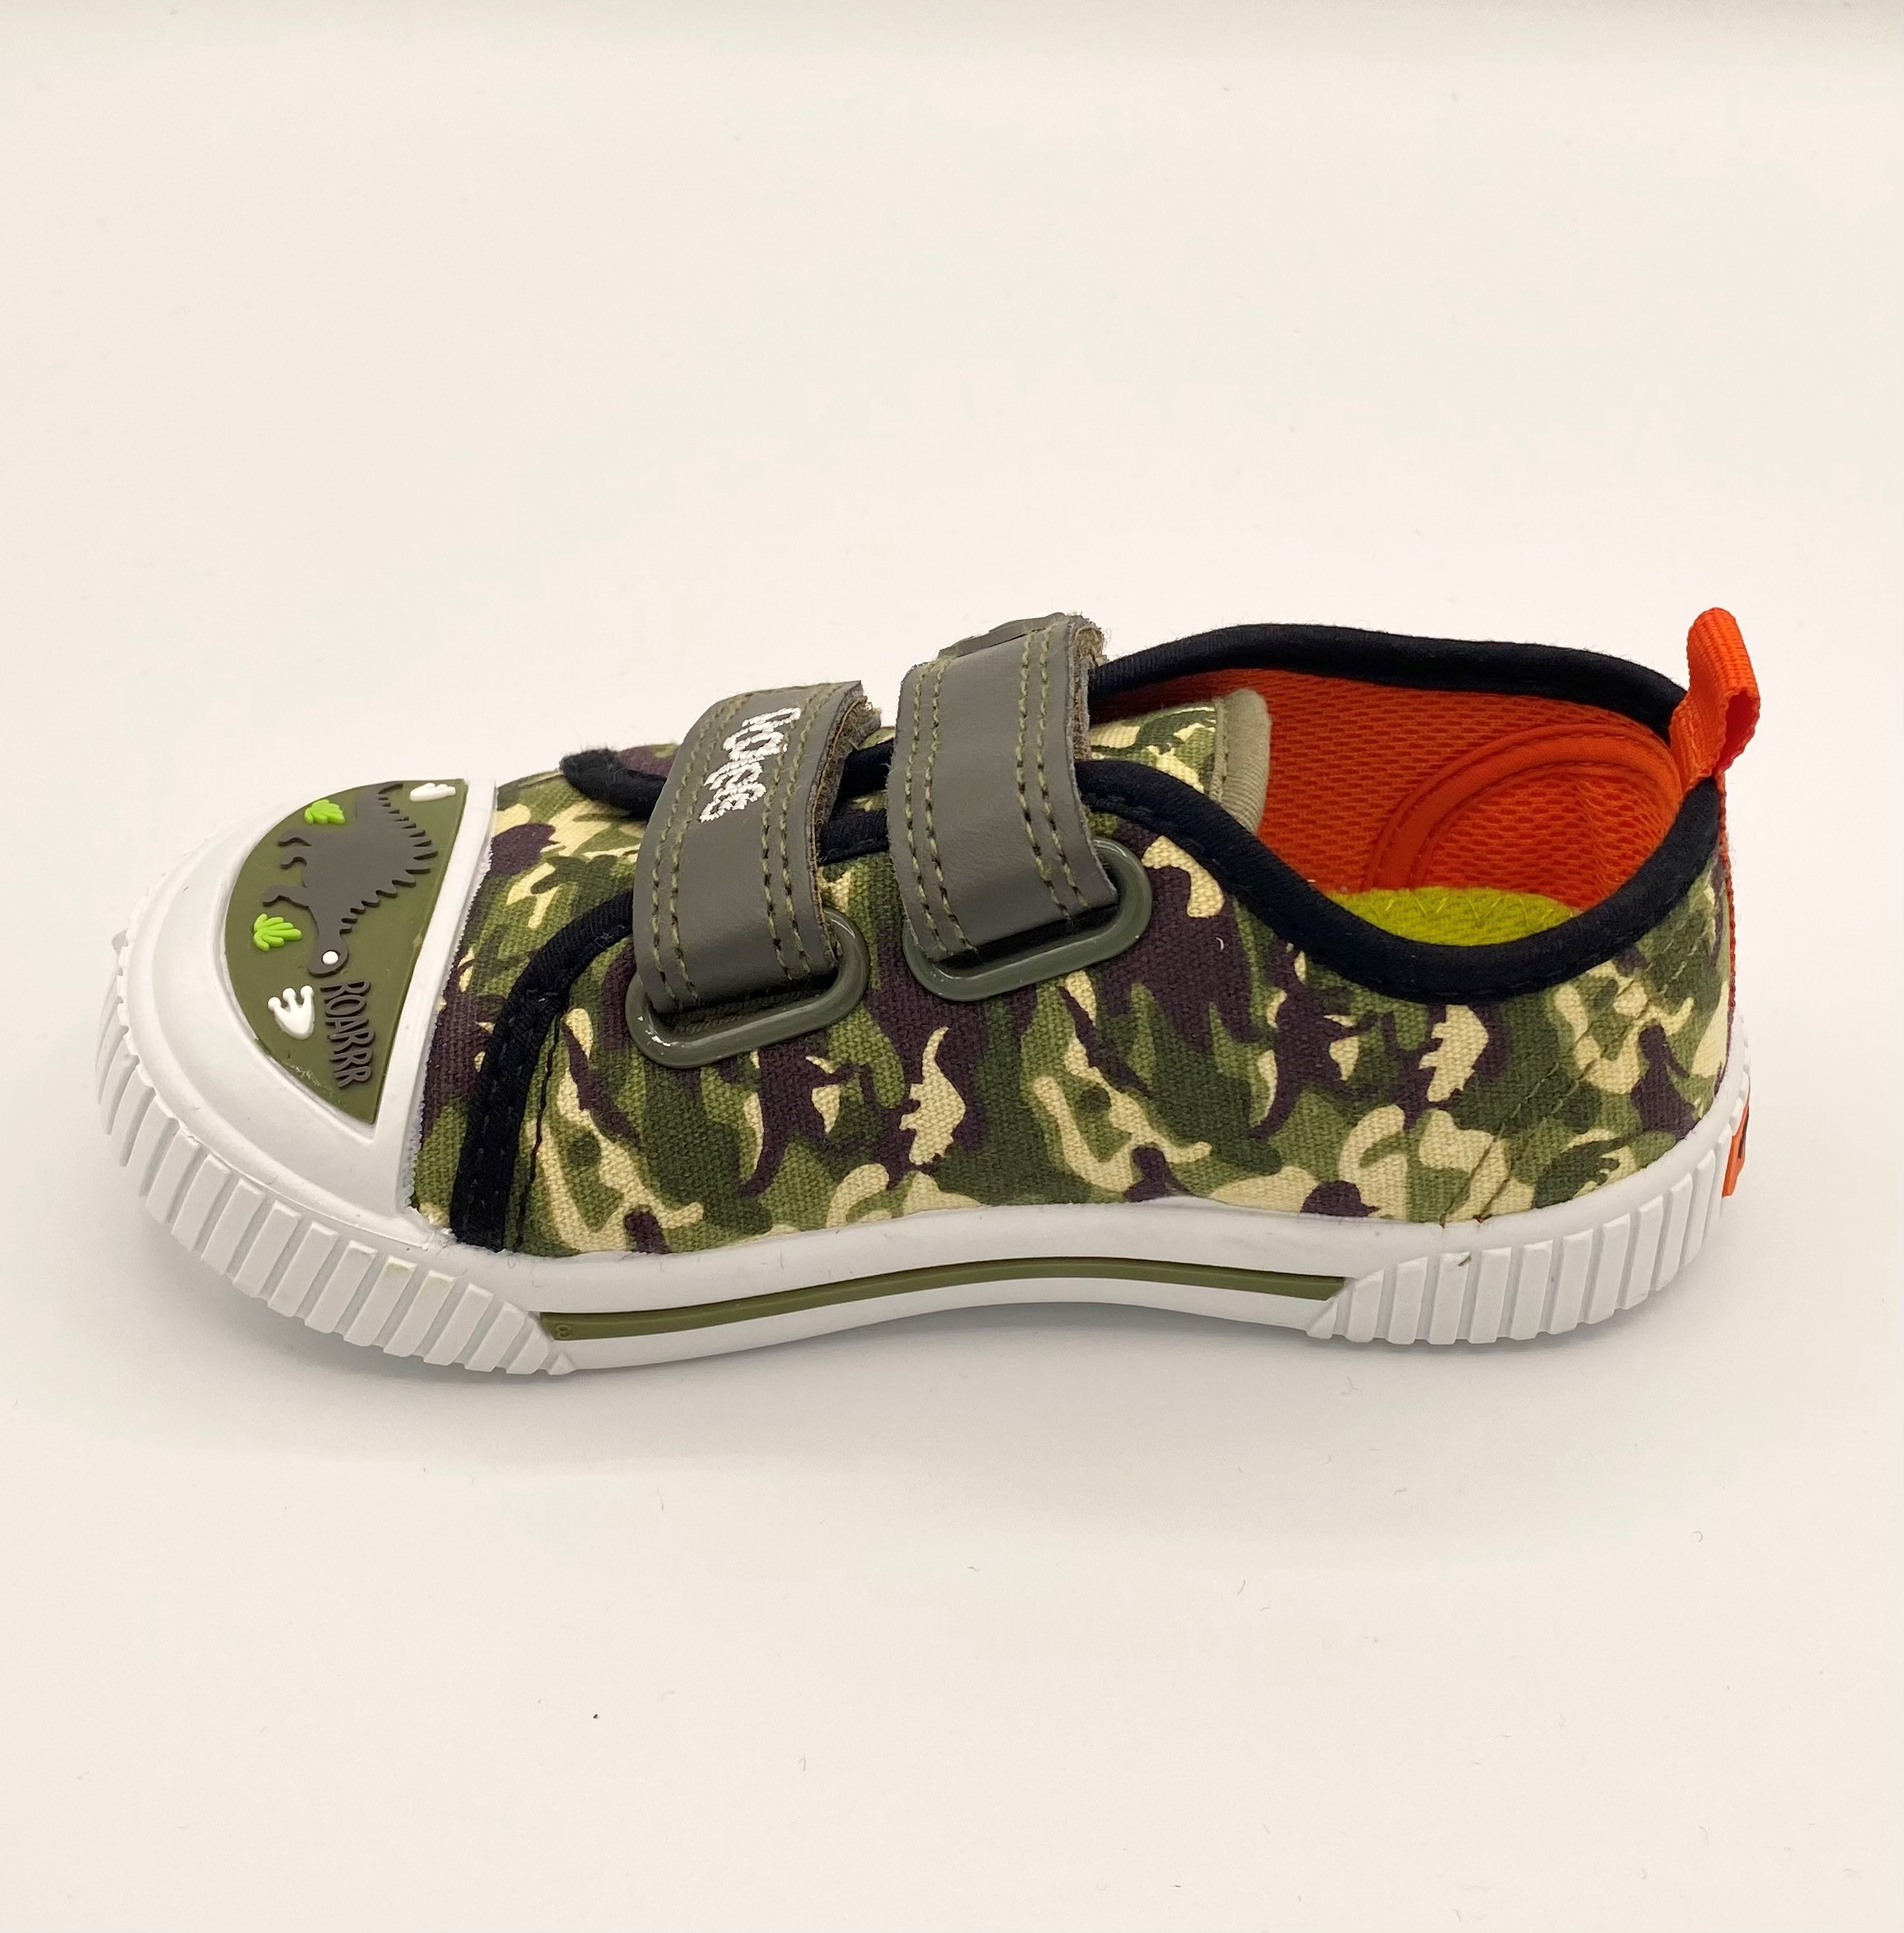 PODLERS BOYS 'Webber' Canvas Trainers